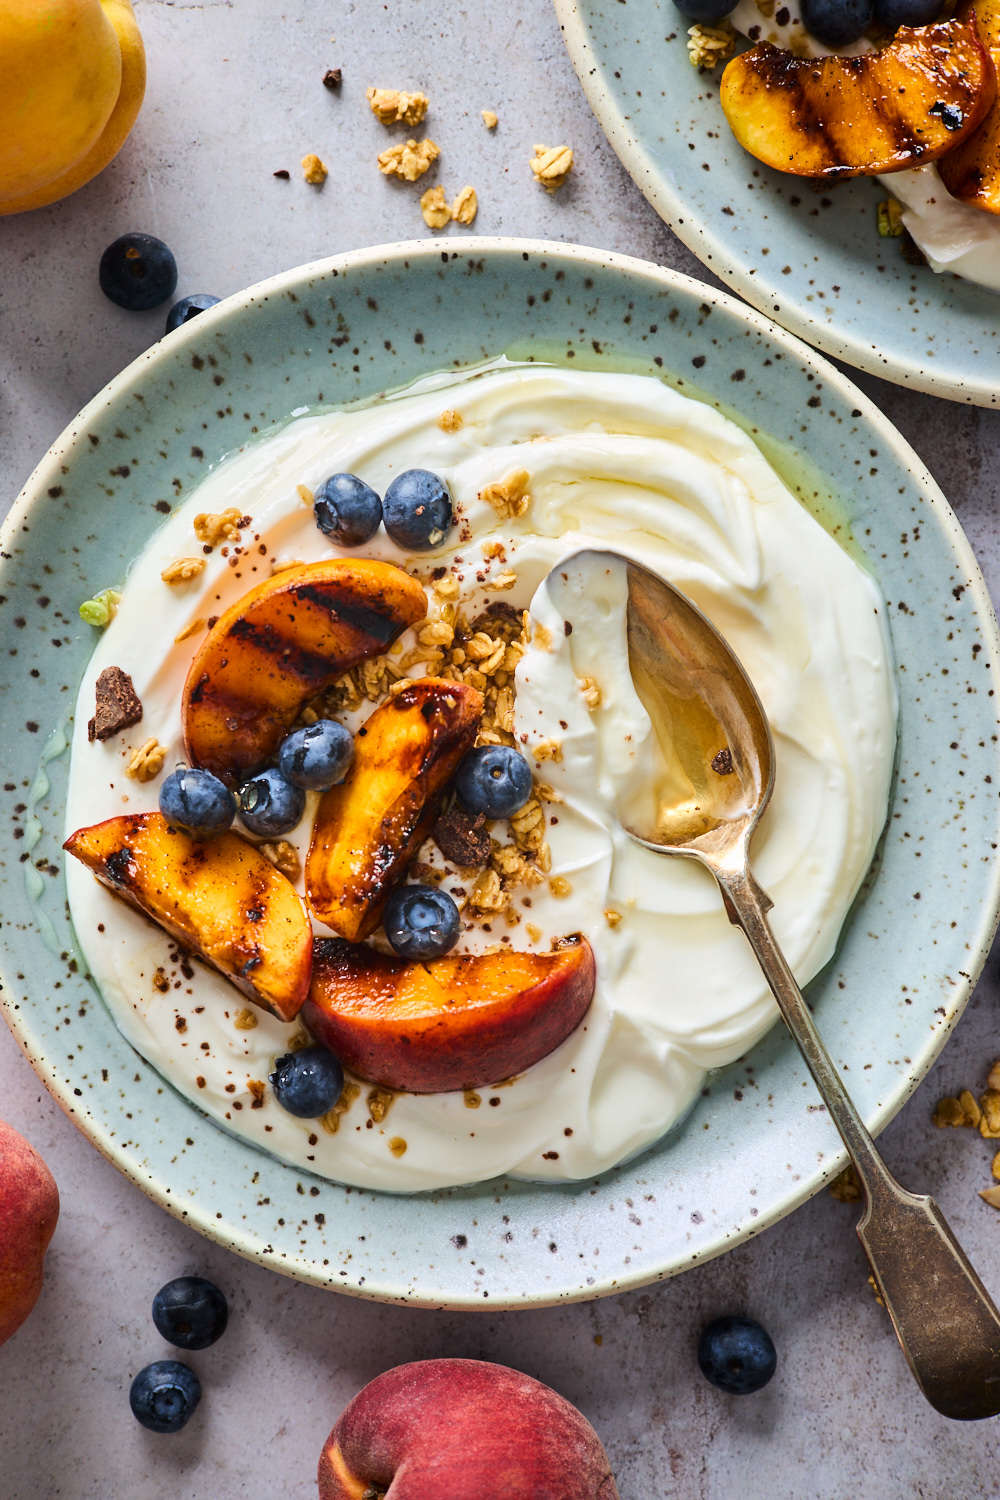 Grilled Peach and Blueberry Yoghurt Parfaits